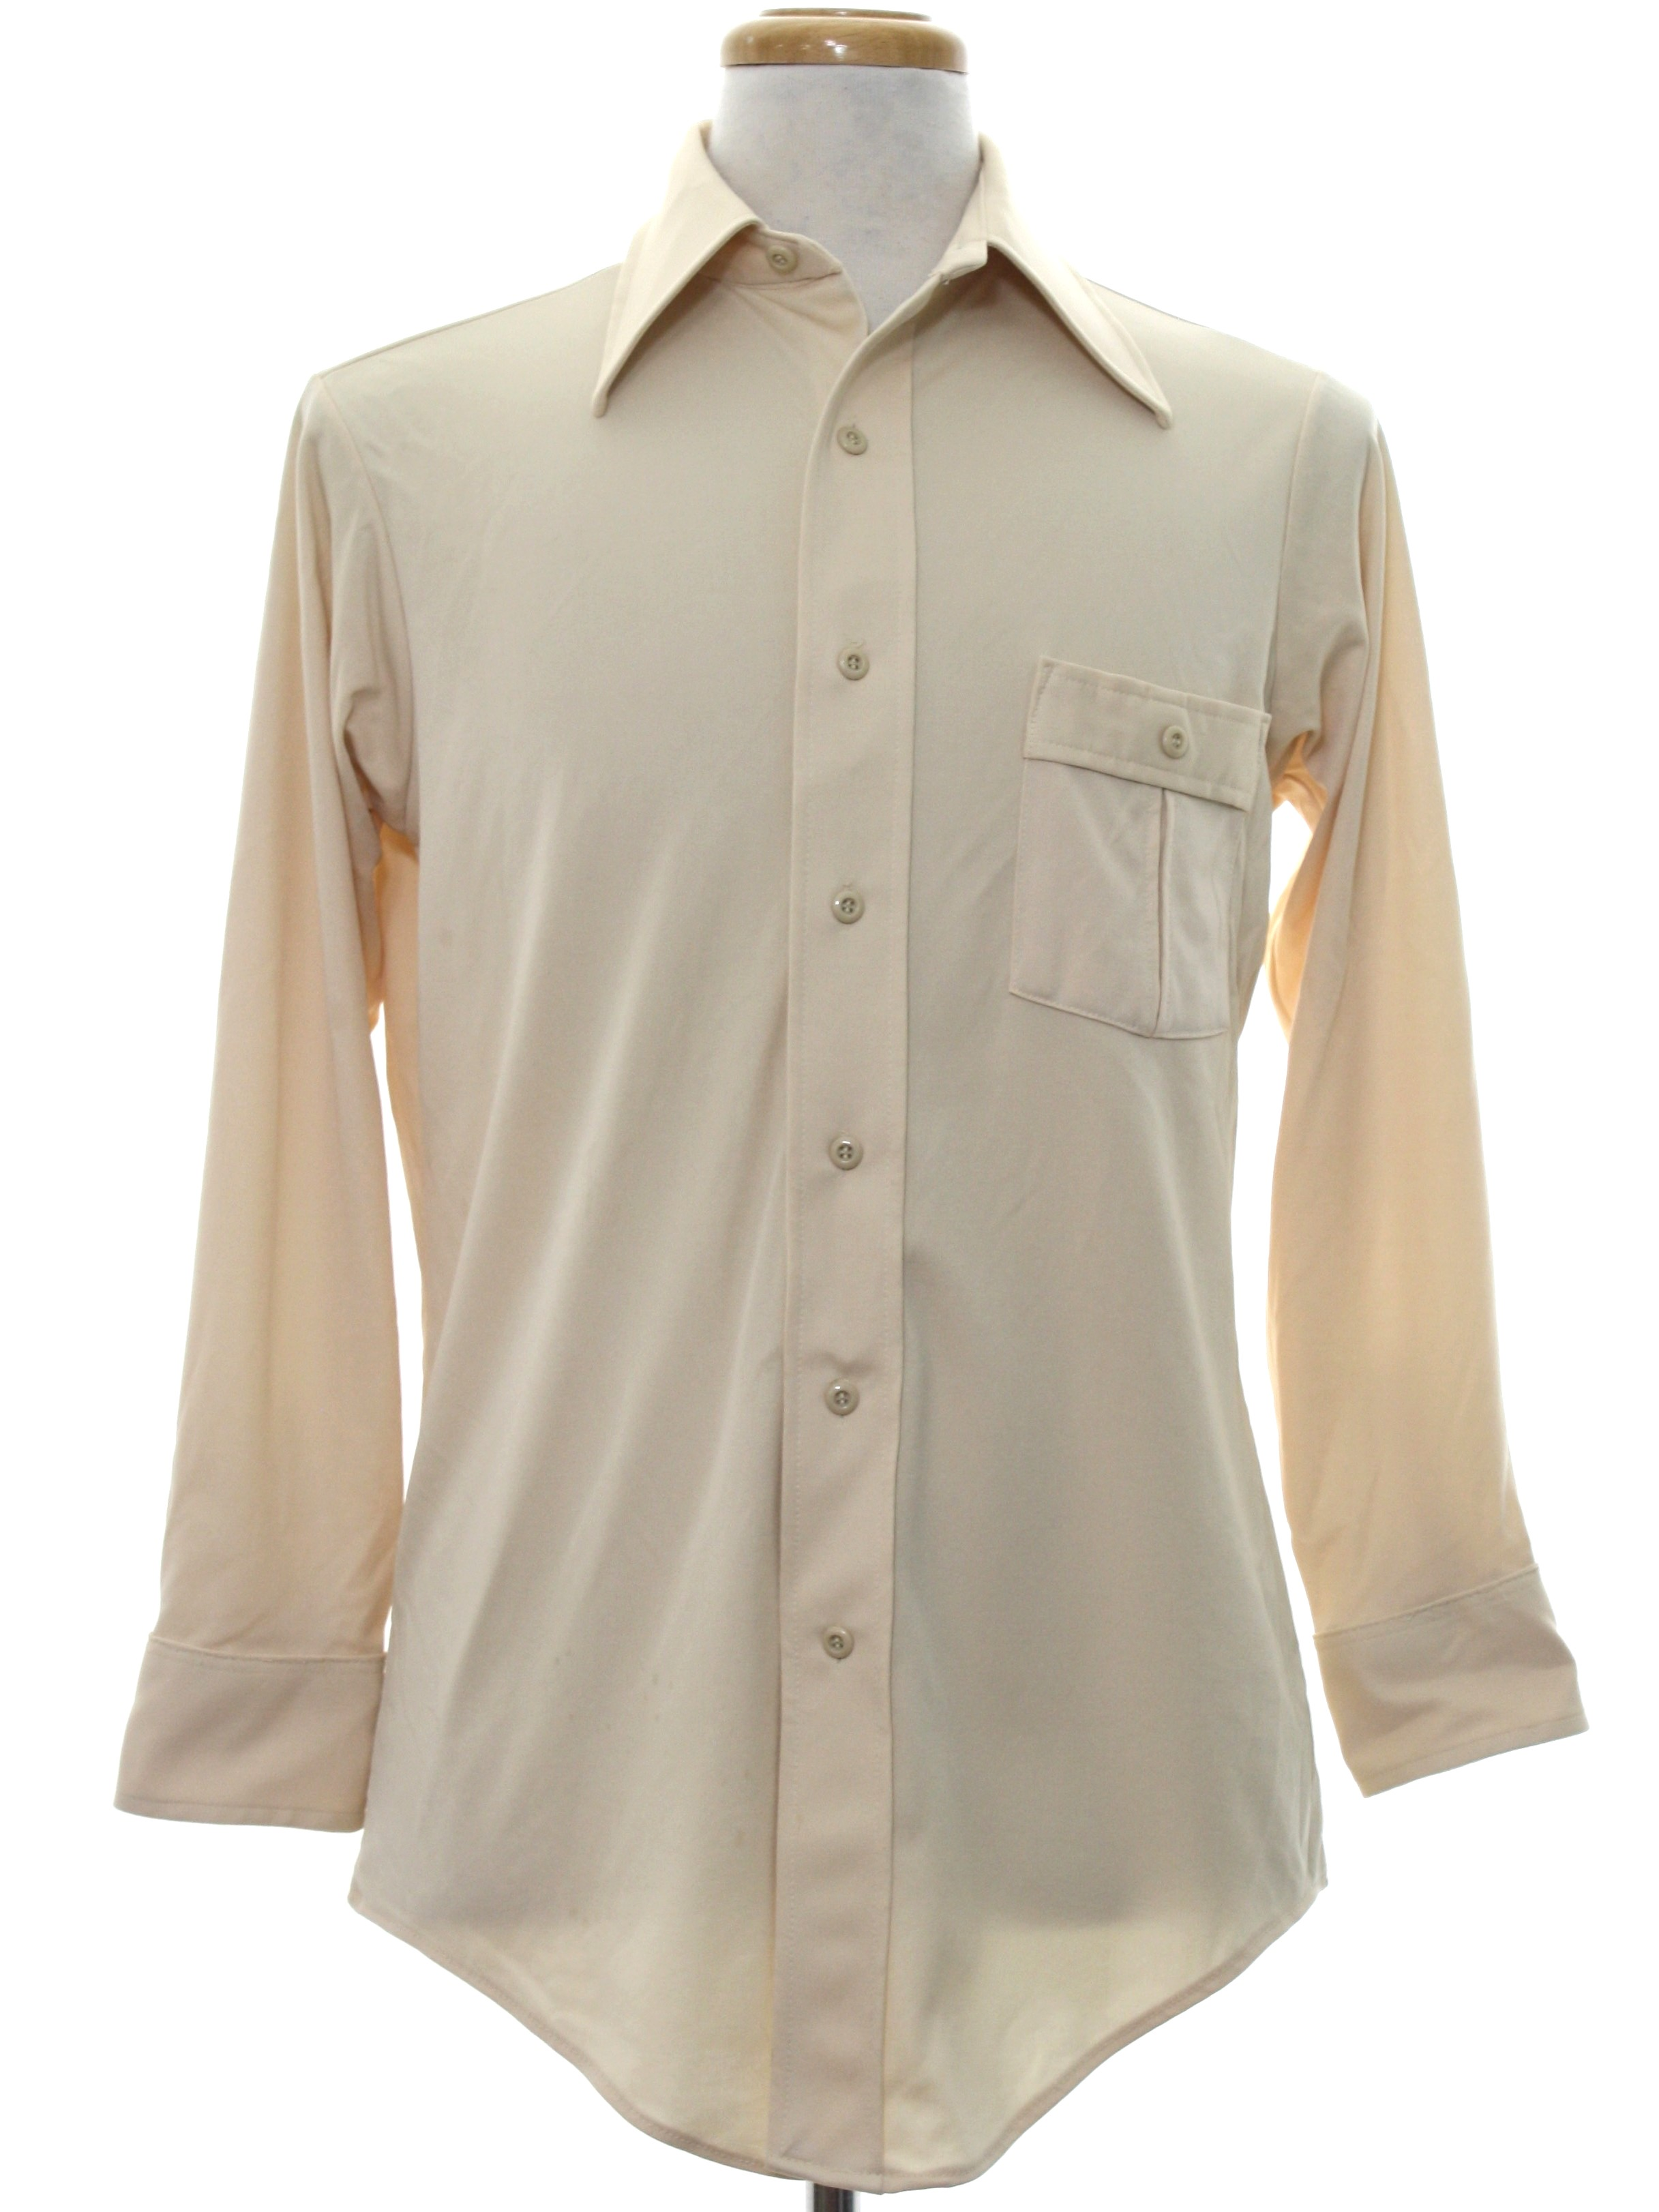 Vintage ultressa by jc penney 70 39 s disco shirt 70s for Solid color button up shirts